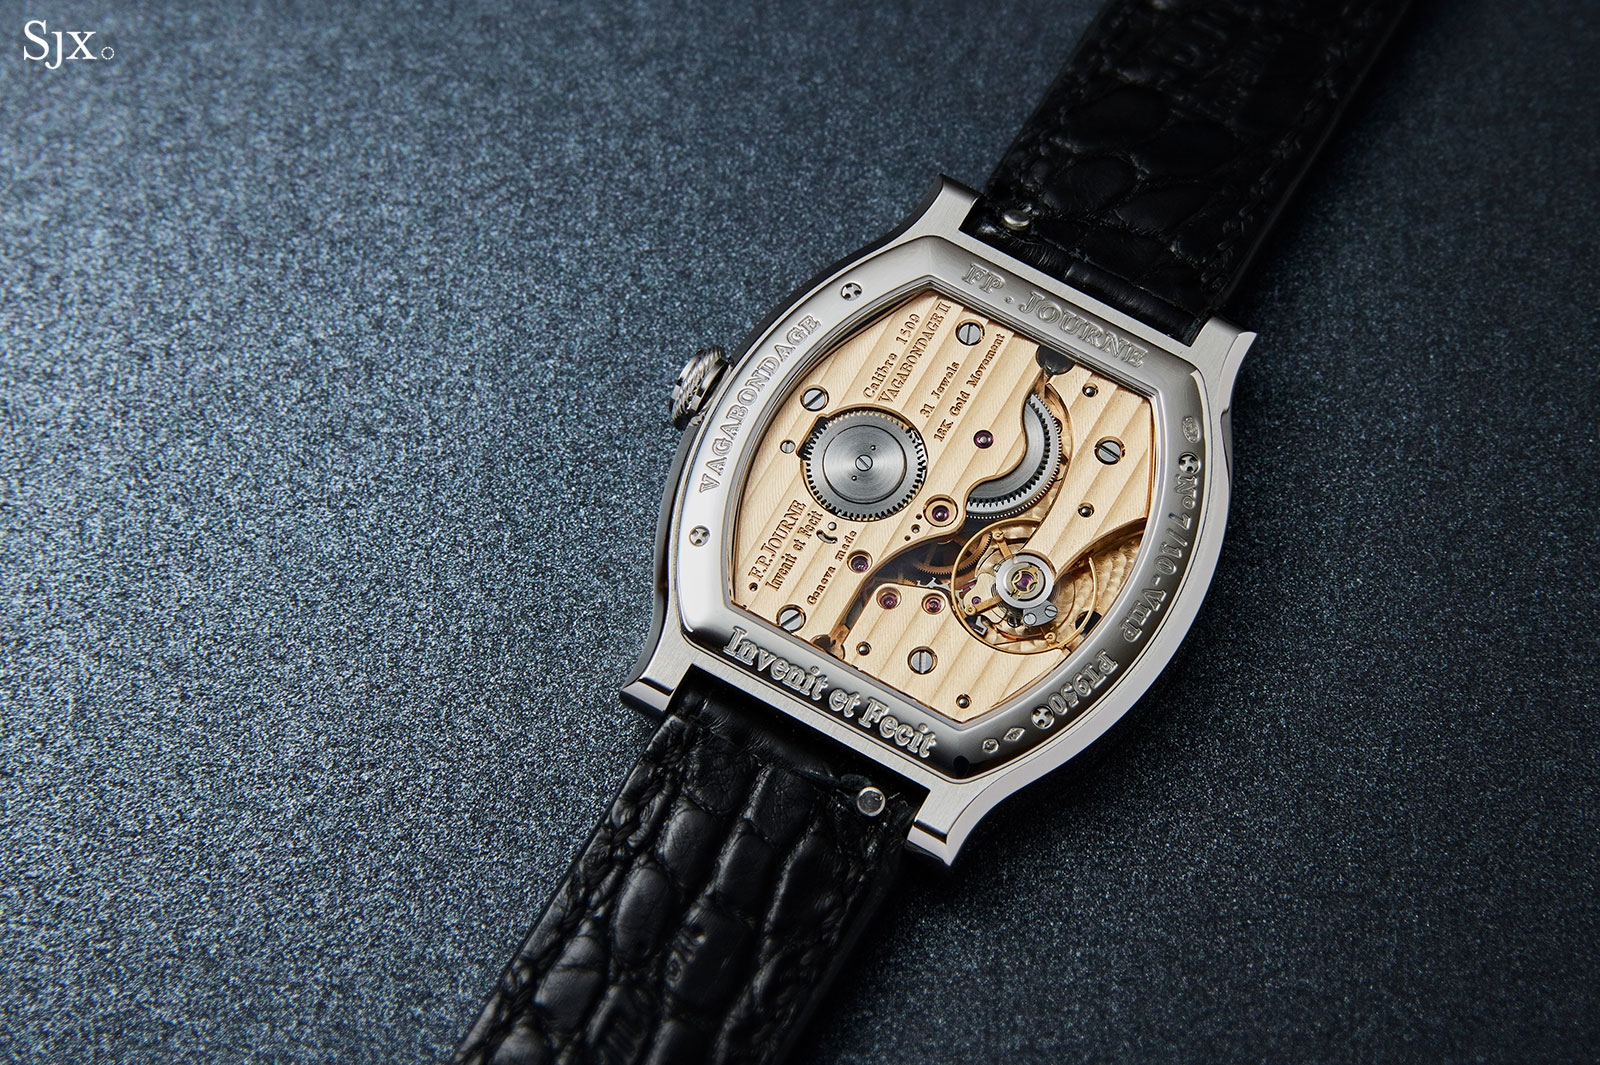 FP Journe Vagabondage II diamonds 2